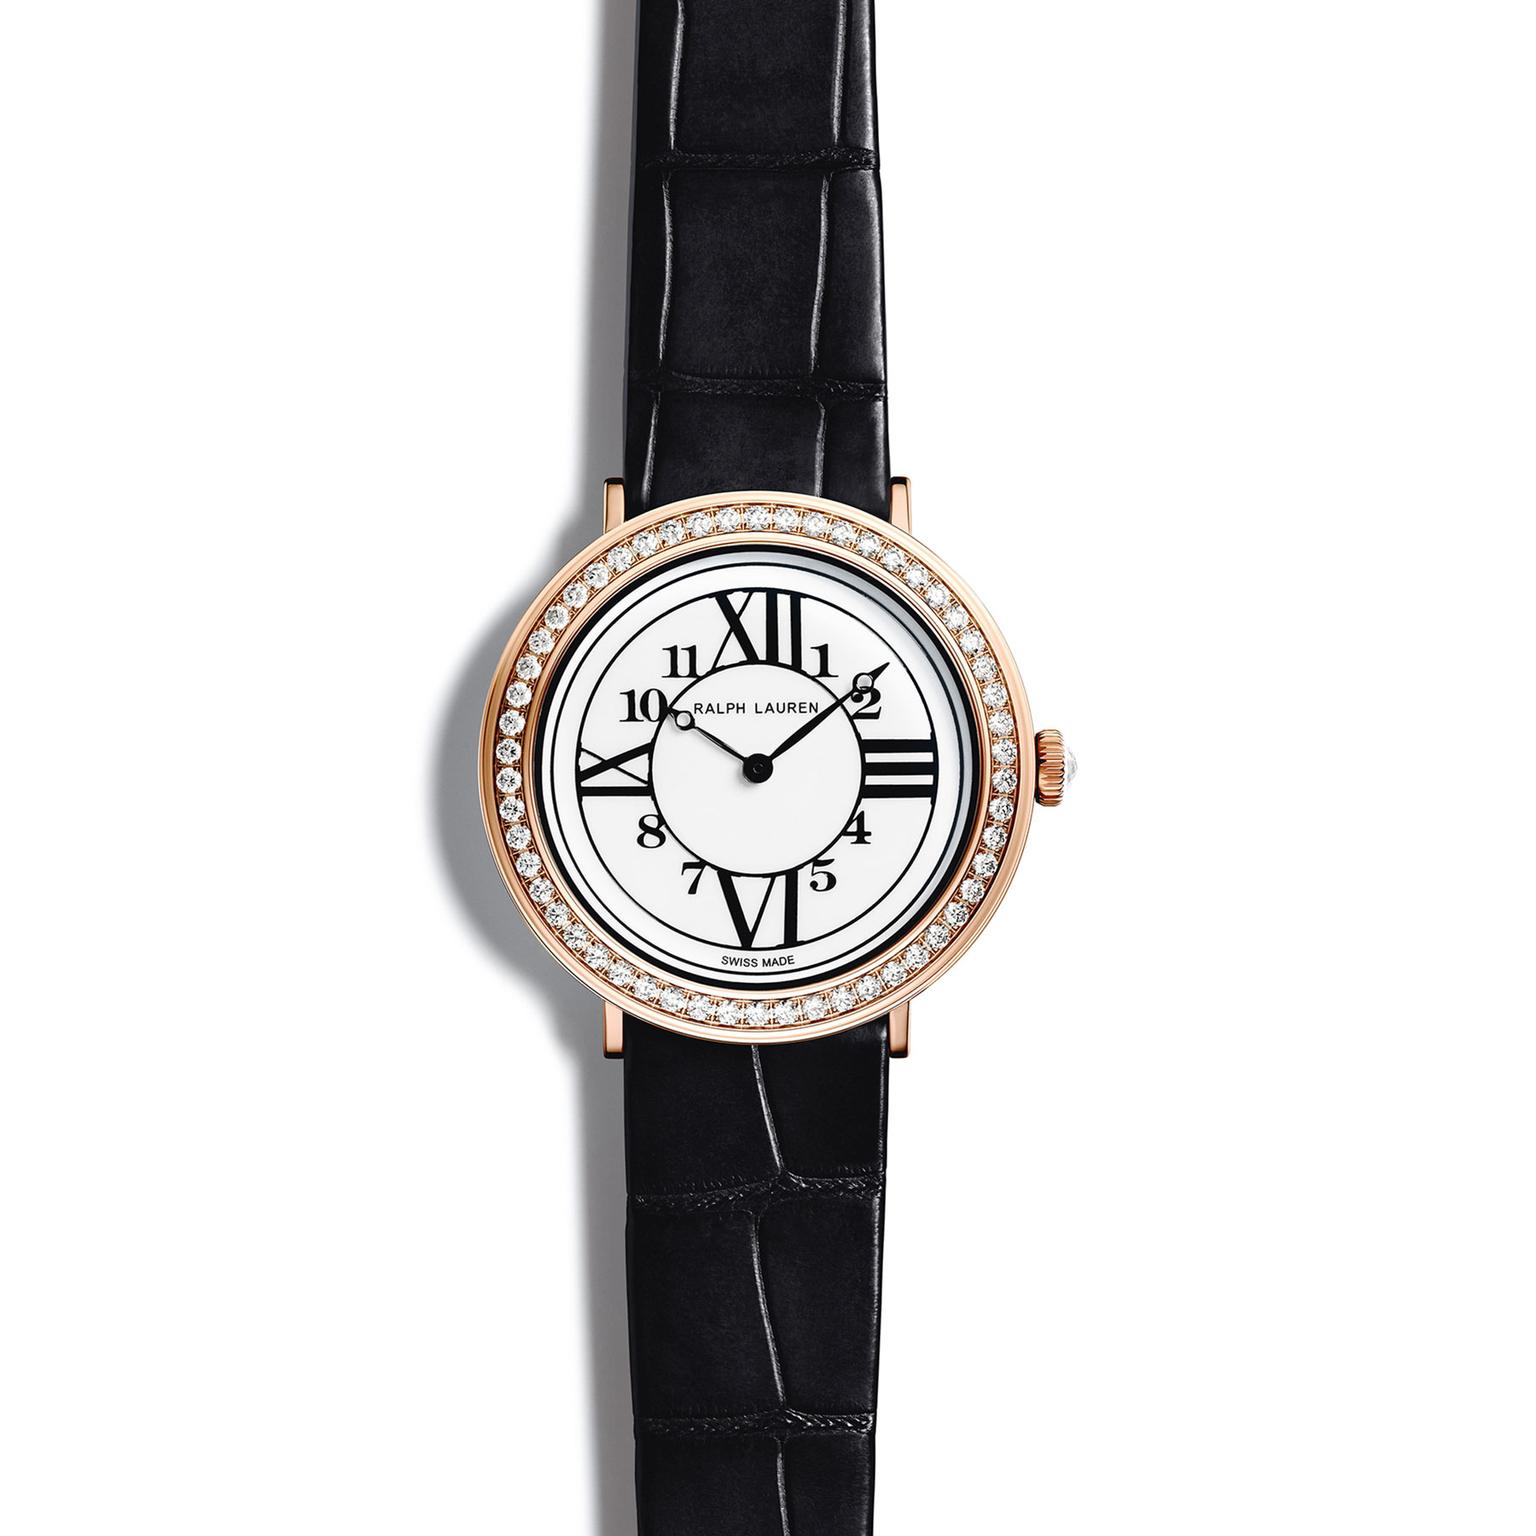 Ralph Lauren RL888 32mm in rose gold with diamonds